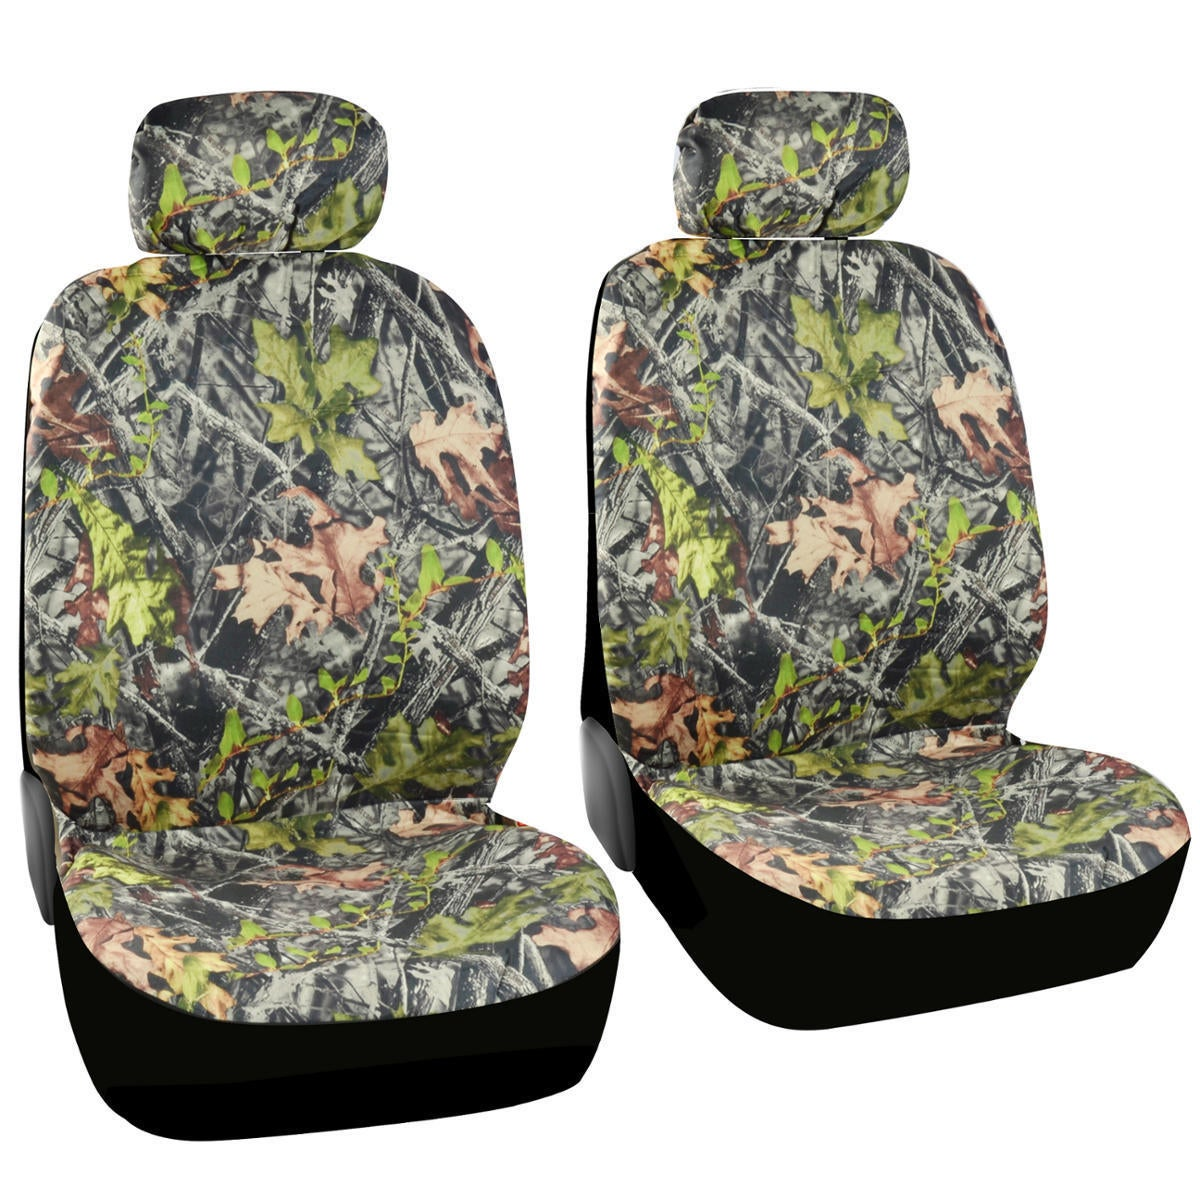 BDK Camouflage Seat Covers for Cars Low Back Seat (Camouf...